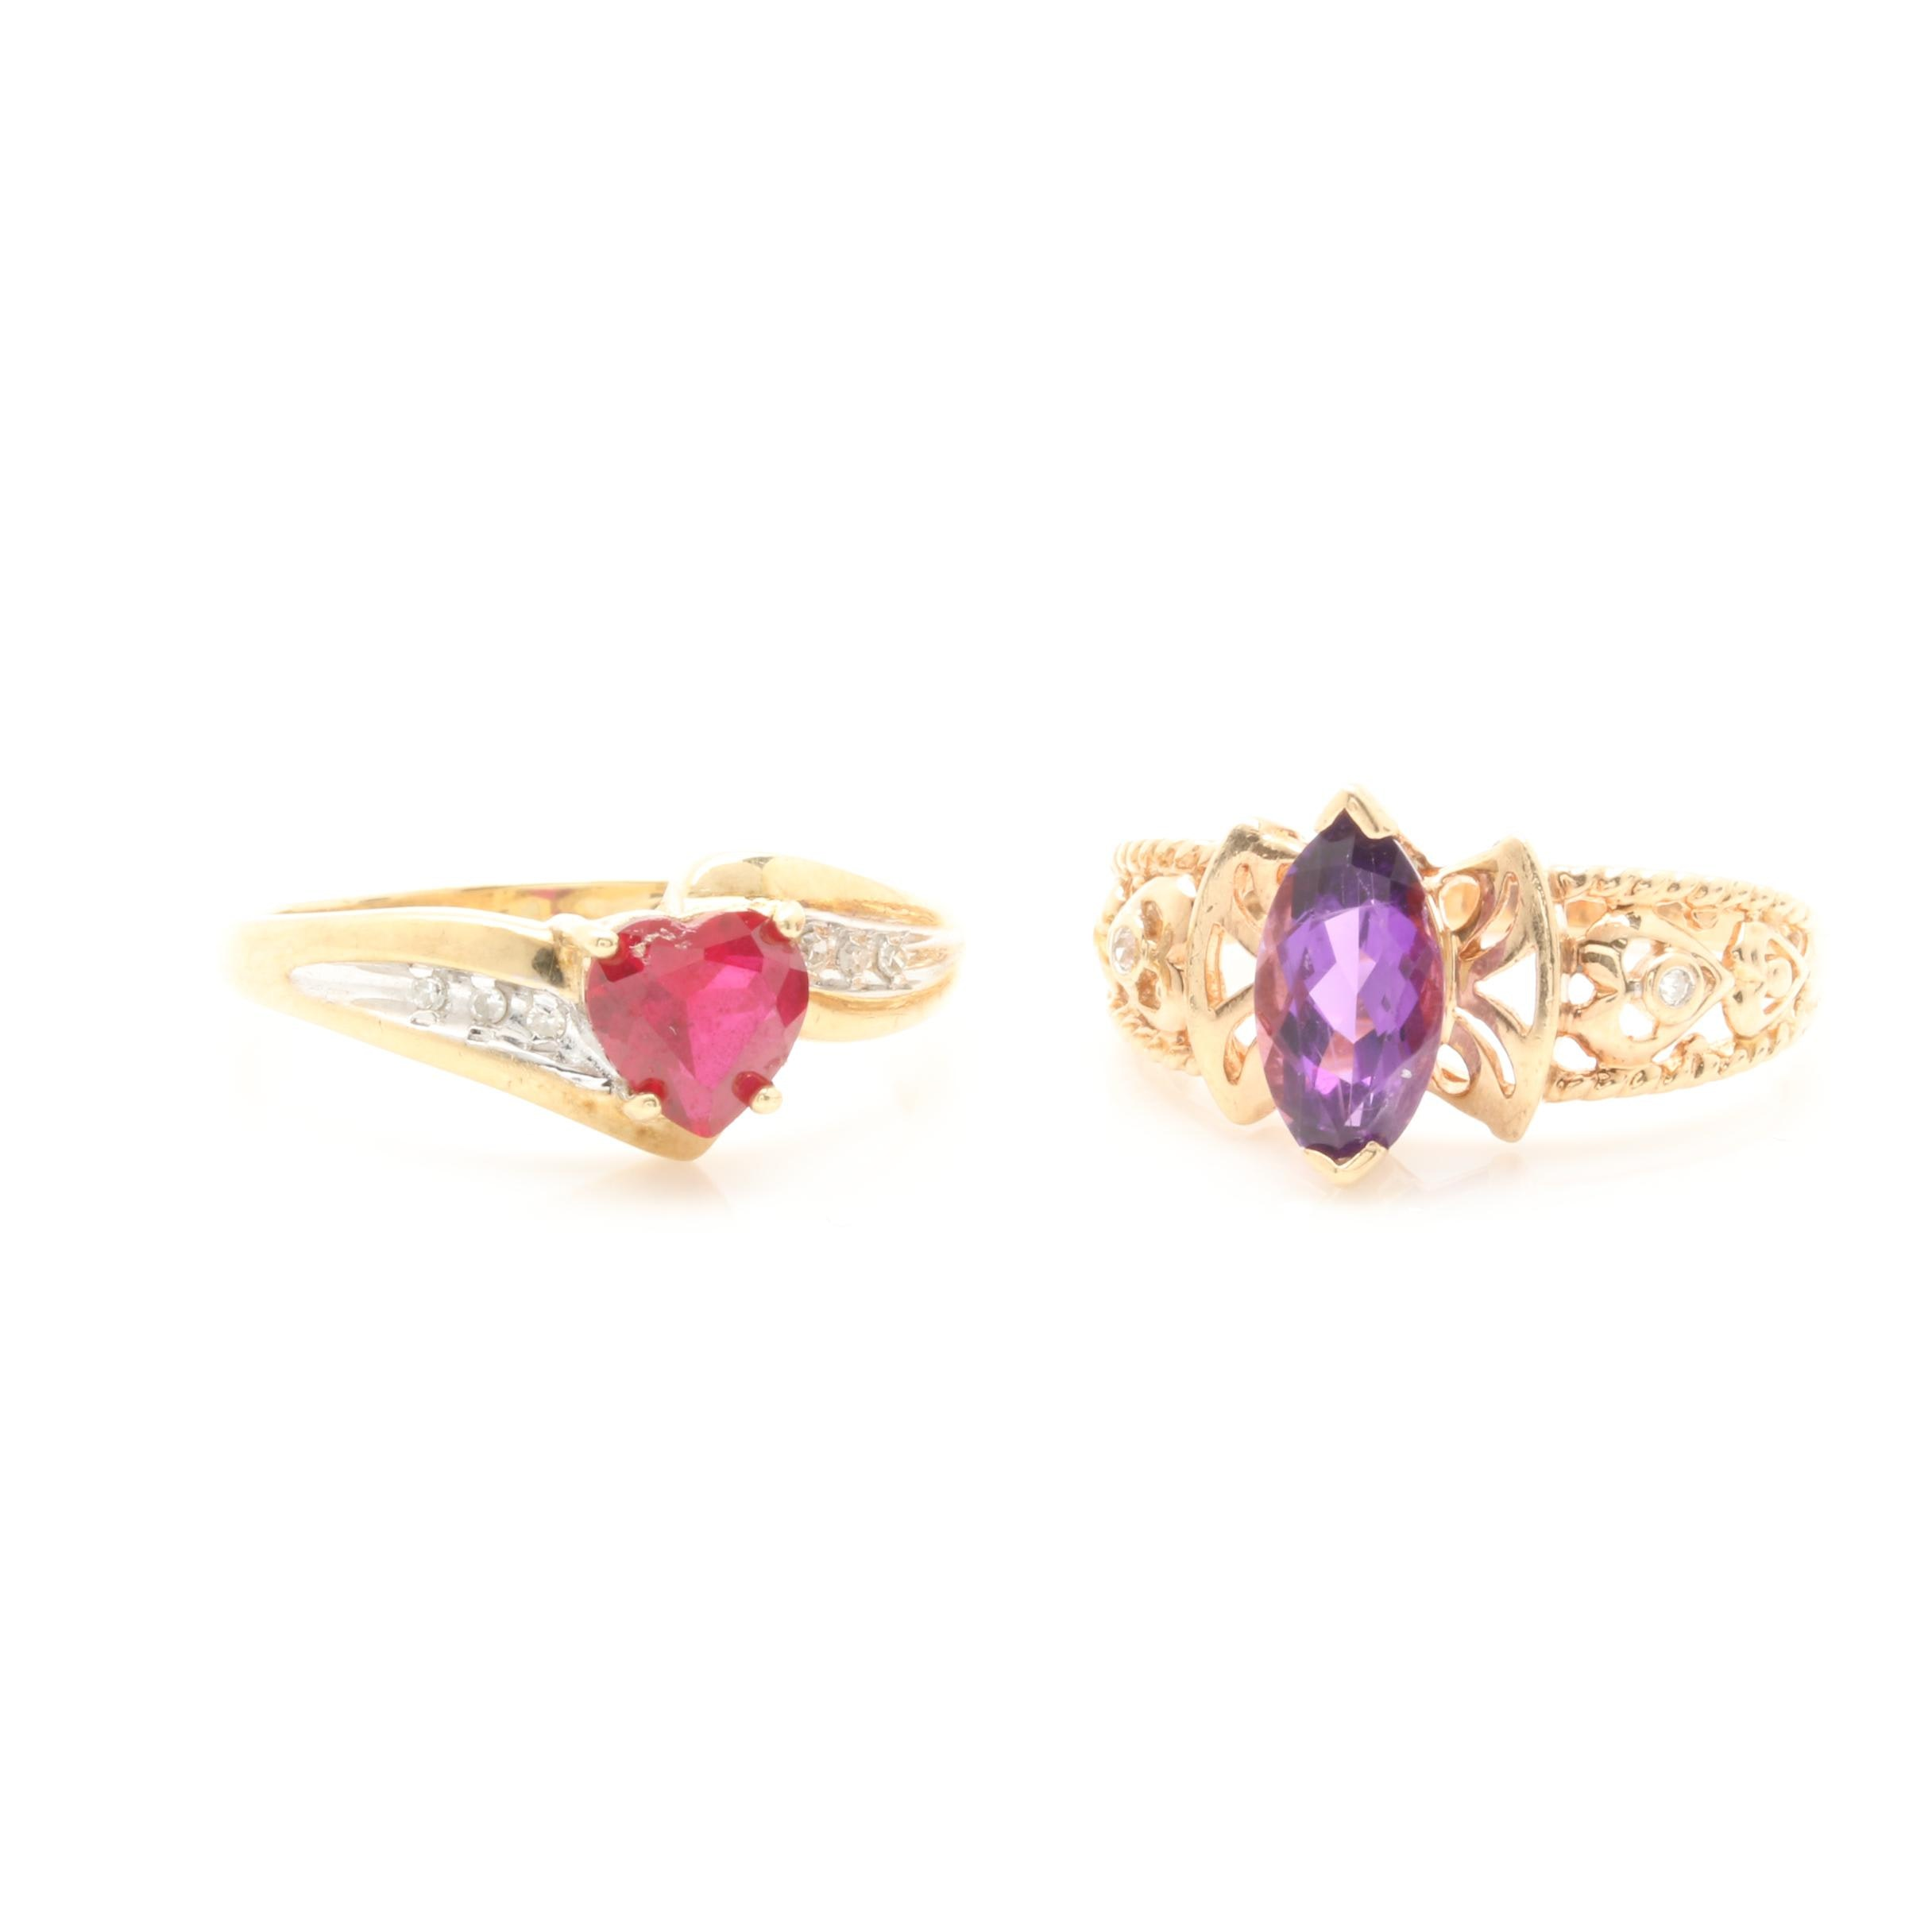 10K Yellow Gold Amethyst, Synthetic Ruby, and Diamond Ring Selection